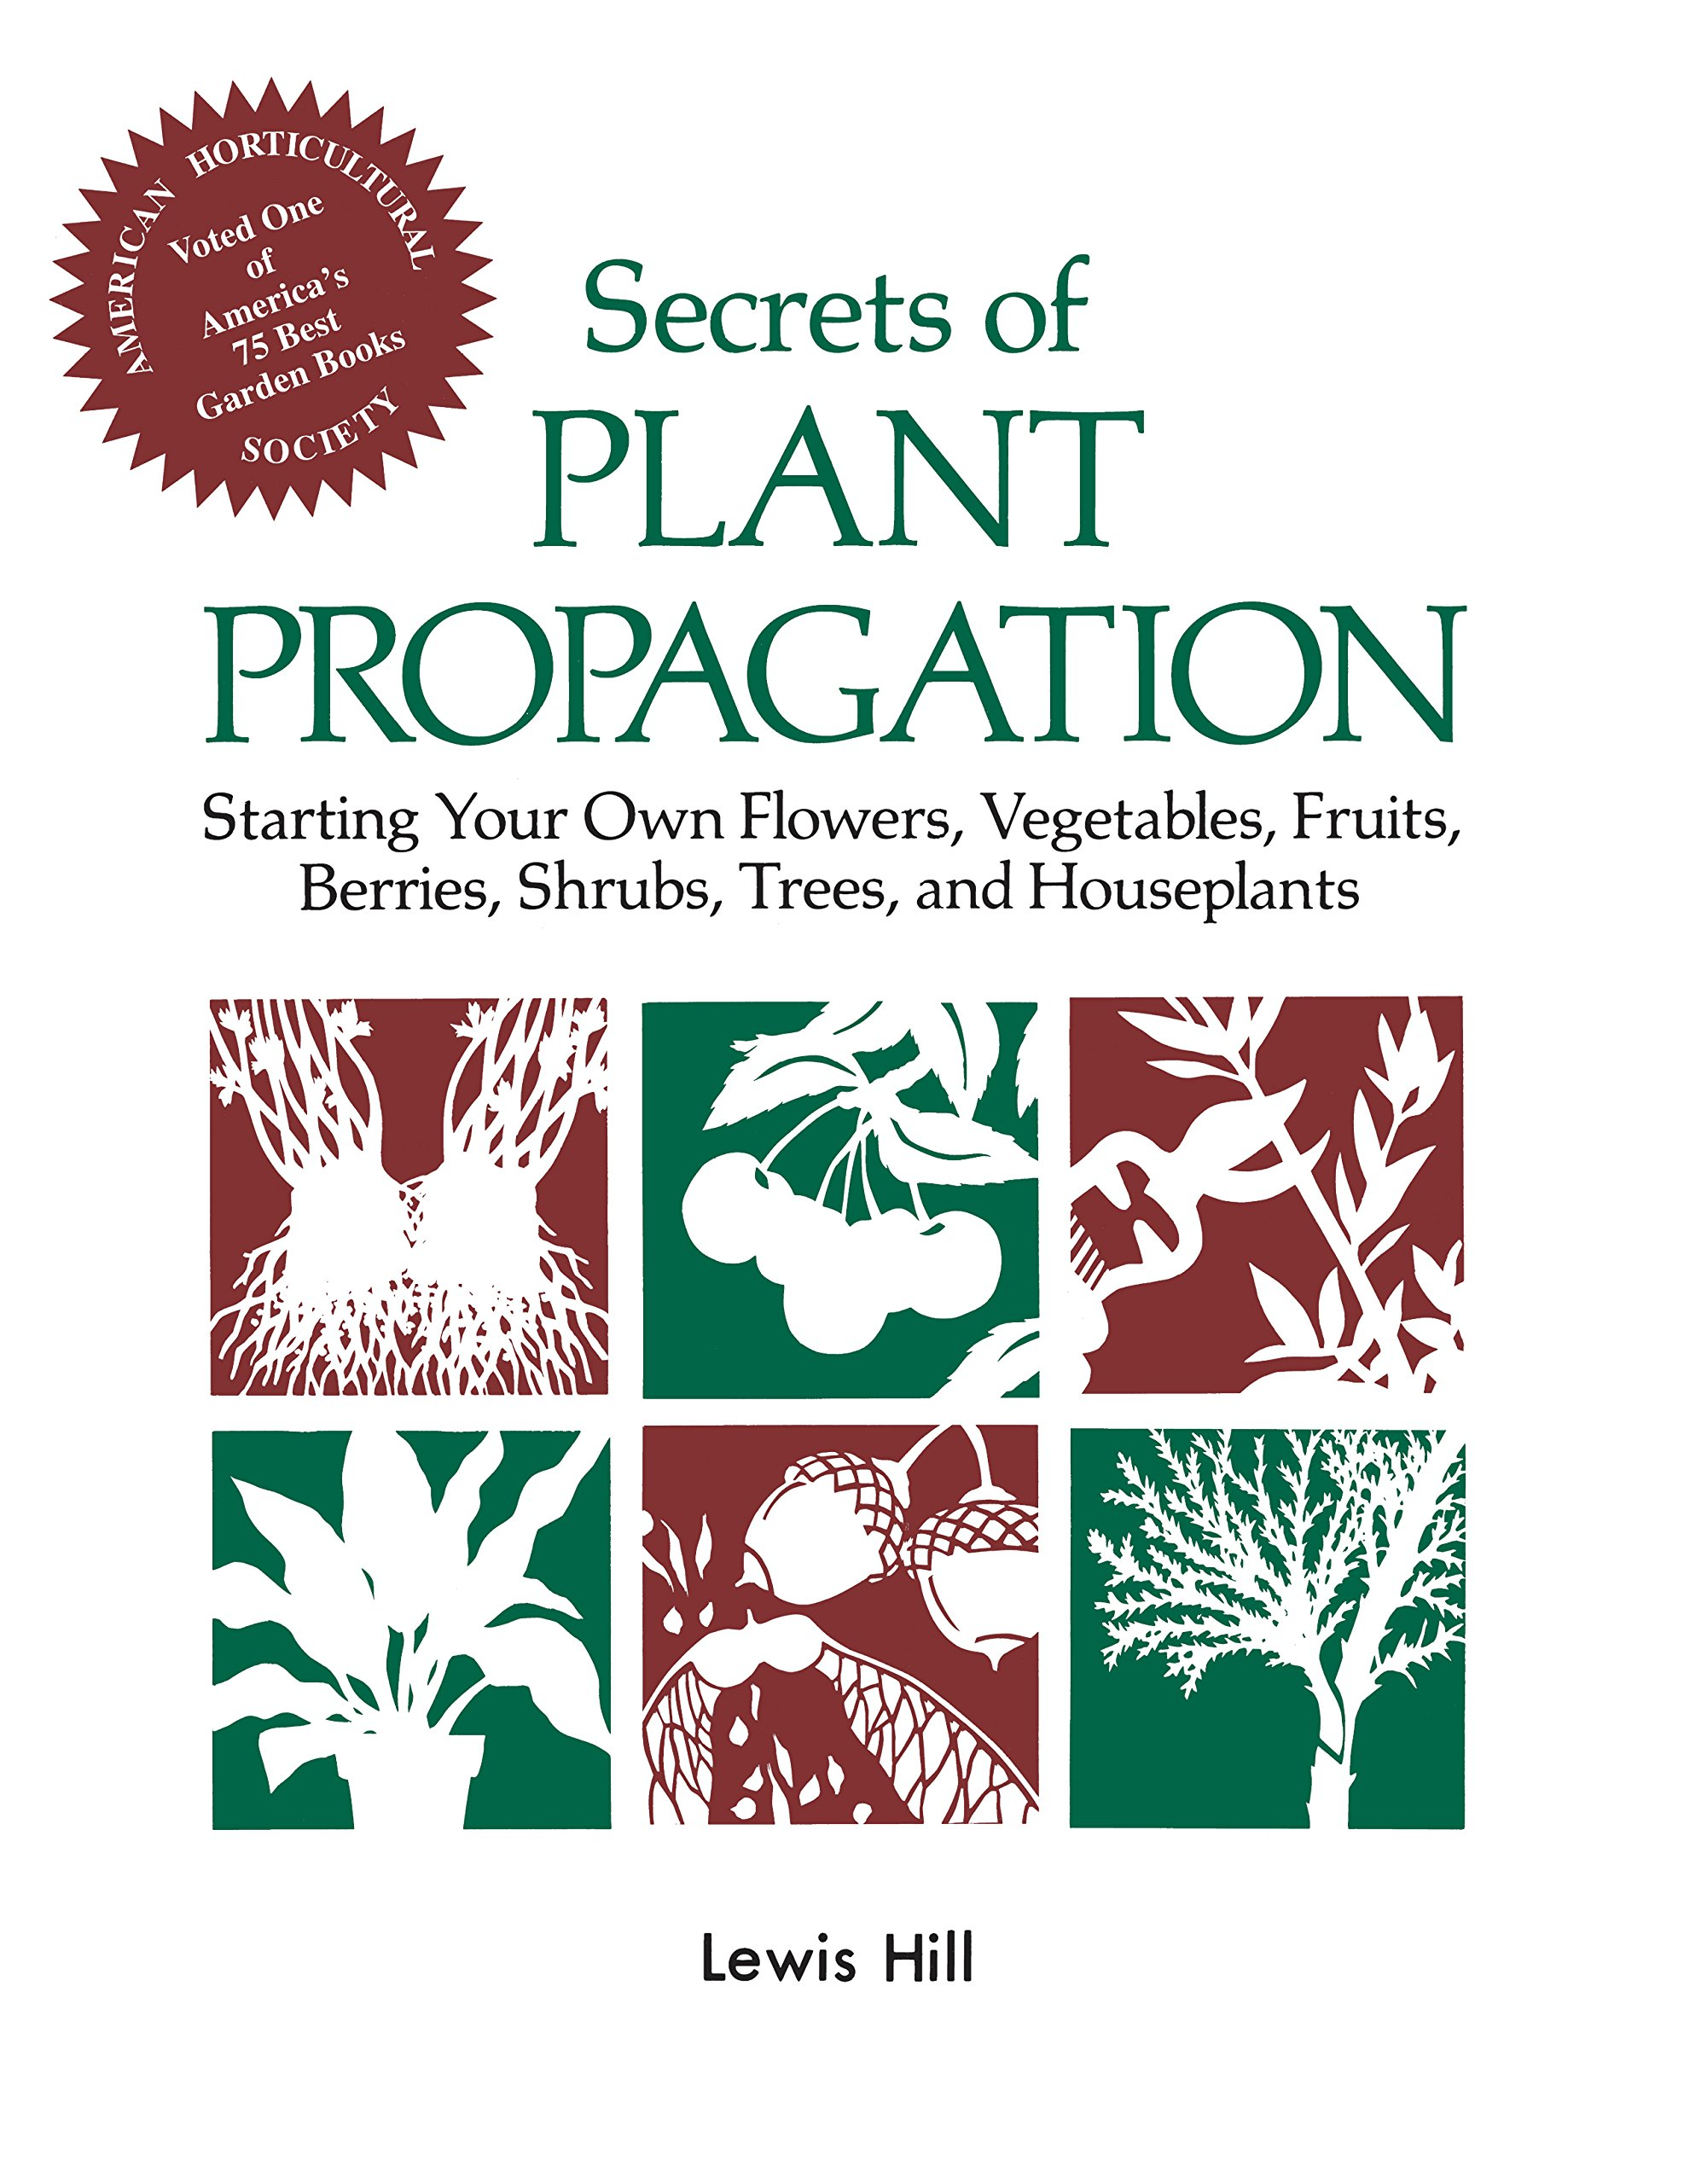 Secrets of Plant Propagation: Starting Your Own Flowers, Vegetables, Fruits, Berries, Shrubs, Trees, and Houseplants by Storey Publishing, LLC